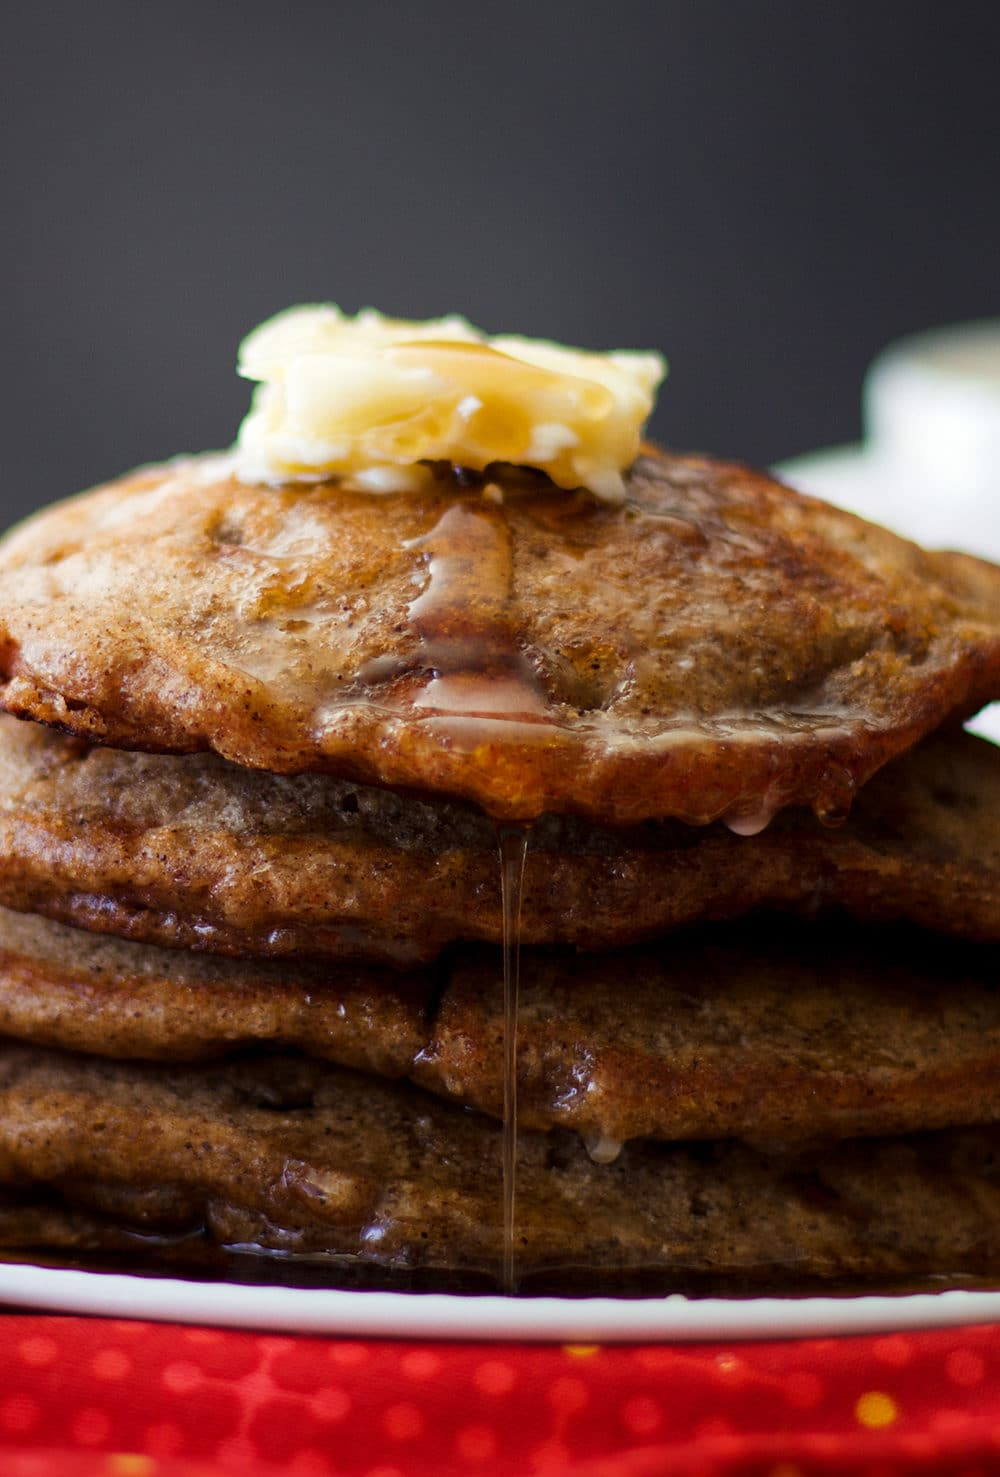 A stack of Apple Cinnamon Pancakes with butter and maple syrup.